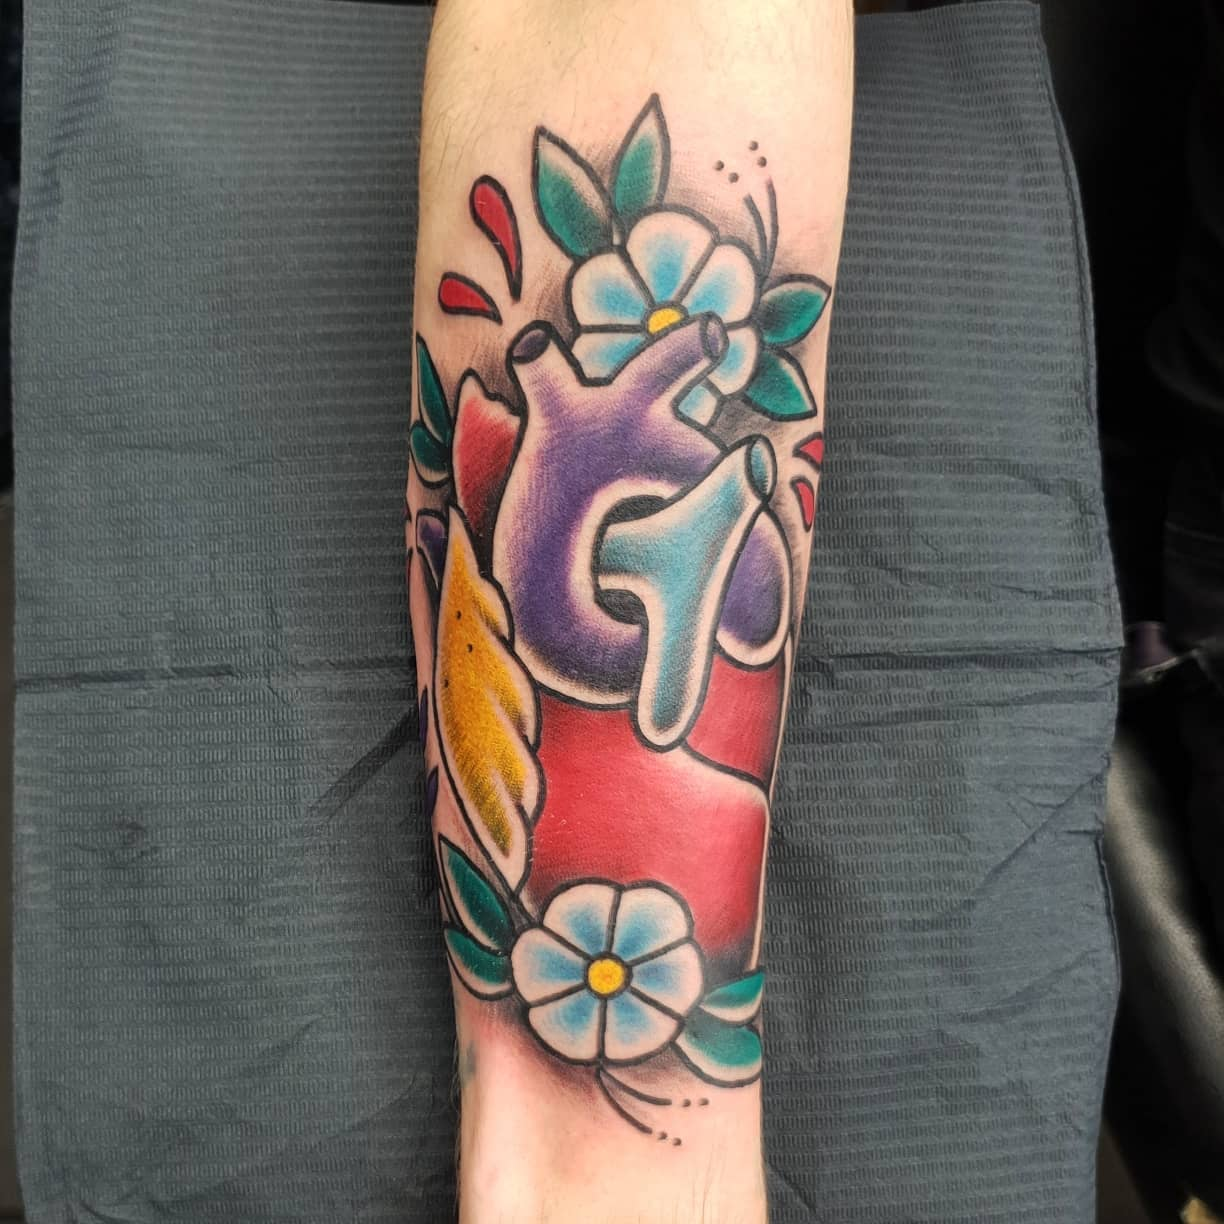 Had an awesome time making this traditionalhearttattoo for @joe_tattooer last week thanks for coming down mate had a blast done over some laser remnants ,made @studioxiiigallery hearttattoo traditionaltattoos tradtattoos traditionaltattooing boldandbright boldwillhold bright_and_bold anatomicalheart anatomicalhearttattoo colourtattoos dermaglo uktrad heart scottishtattooer edinburghtattooer edinburgh scotland tattoosbyalanross alrosstattoo studioxiiigallery studioxiii